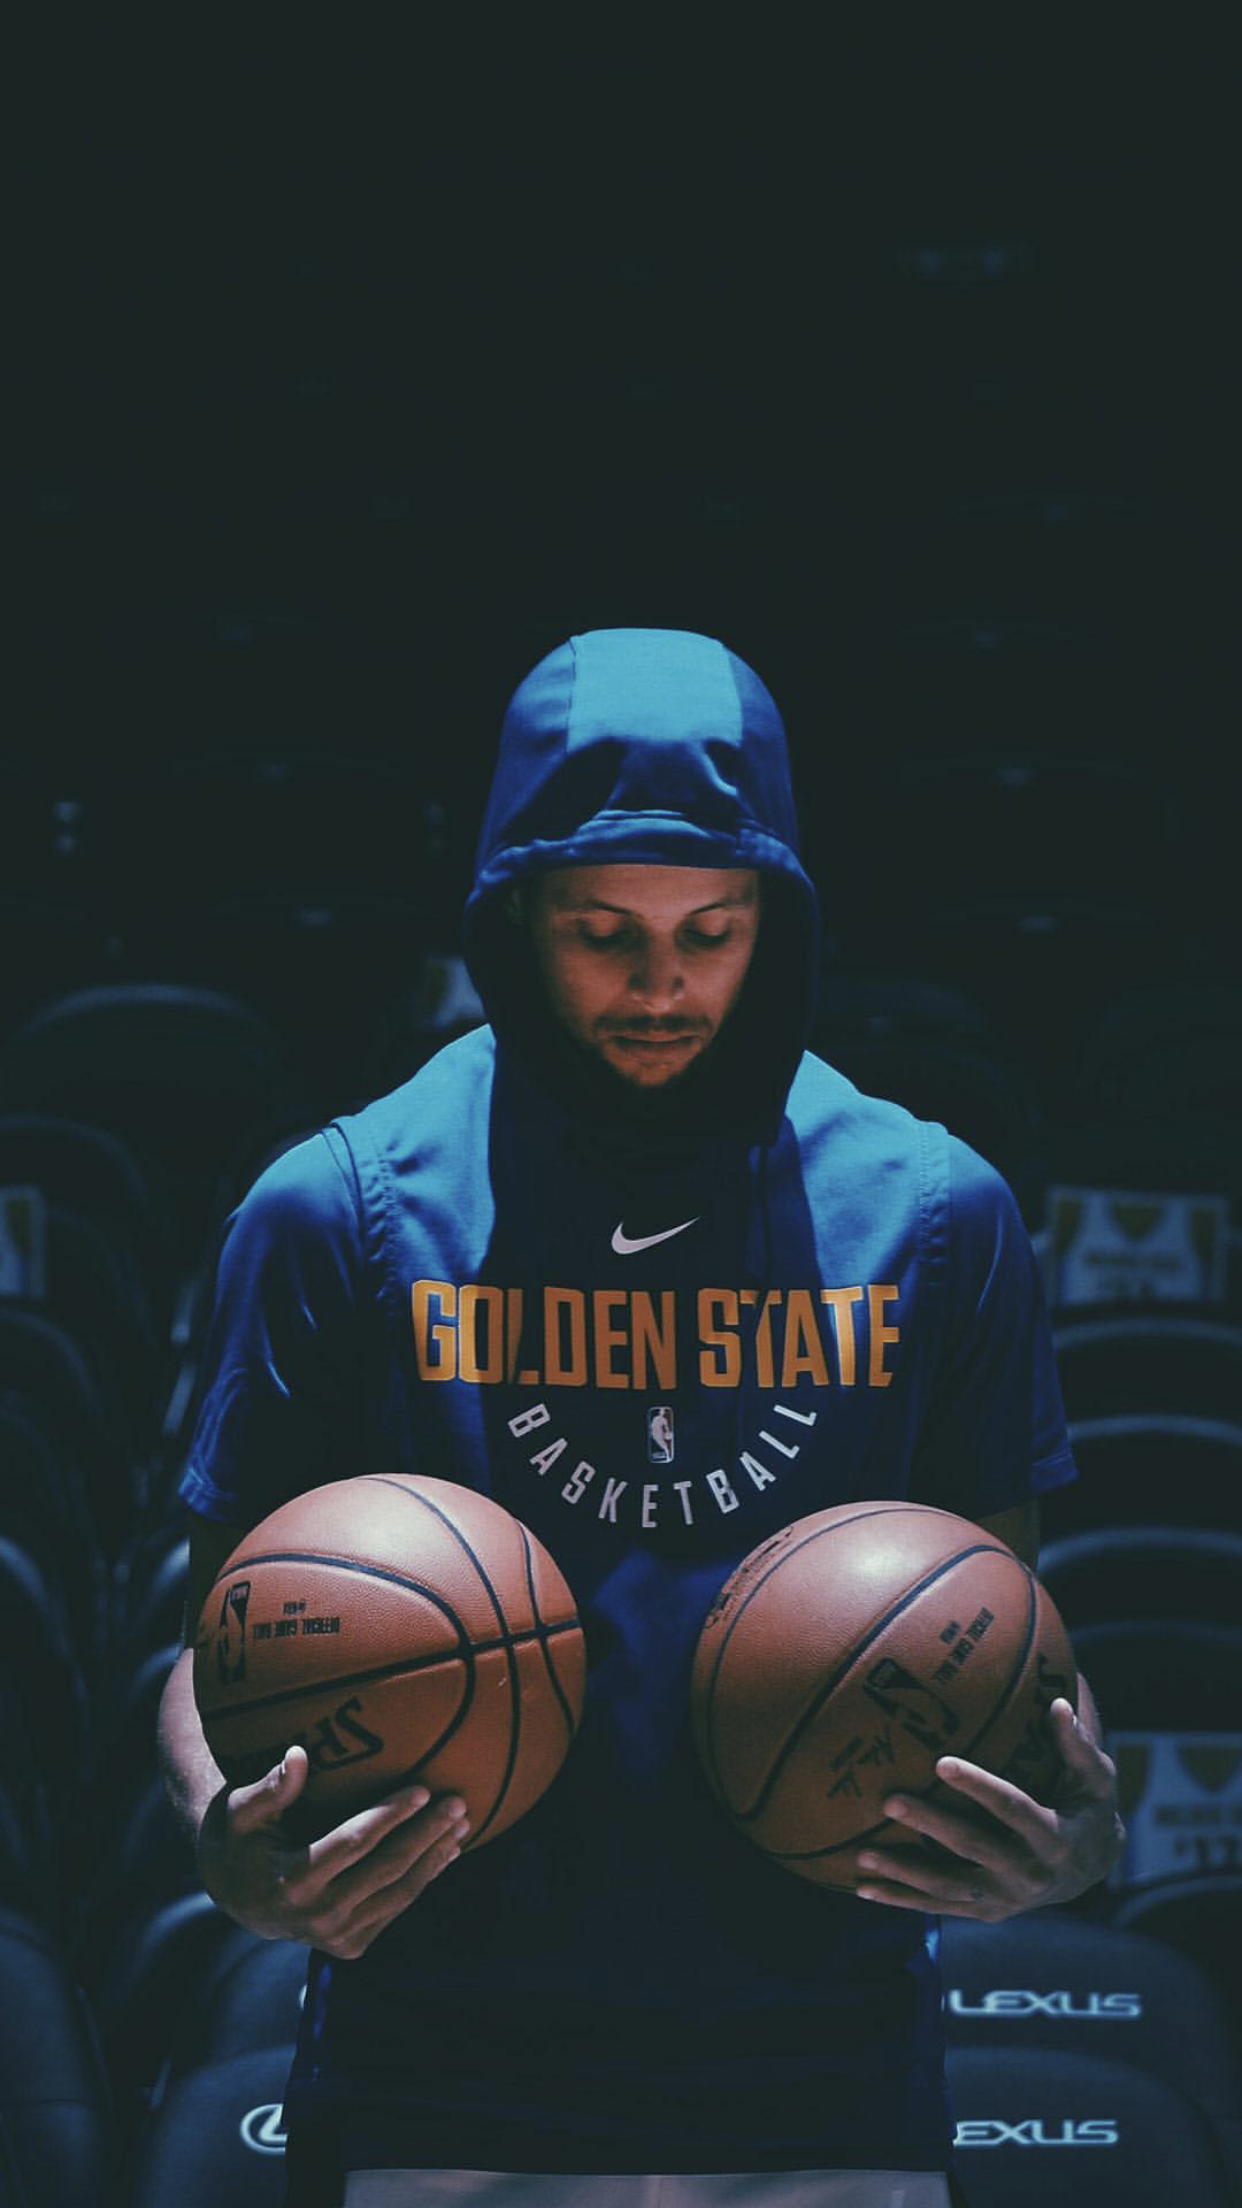 Curry wallpaper Stephen curry basketball